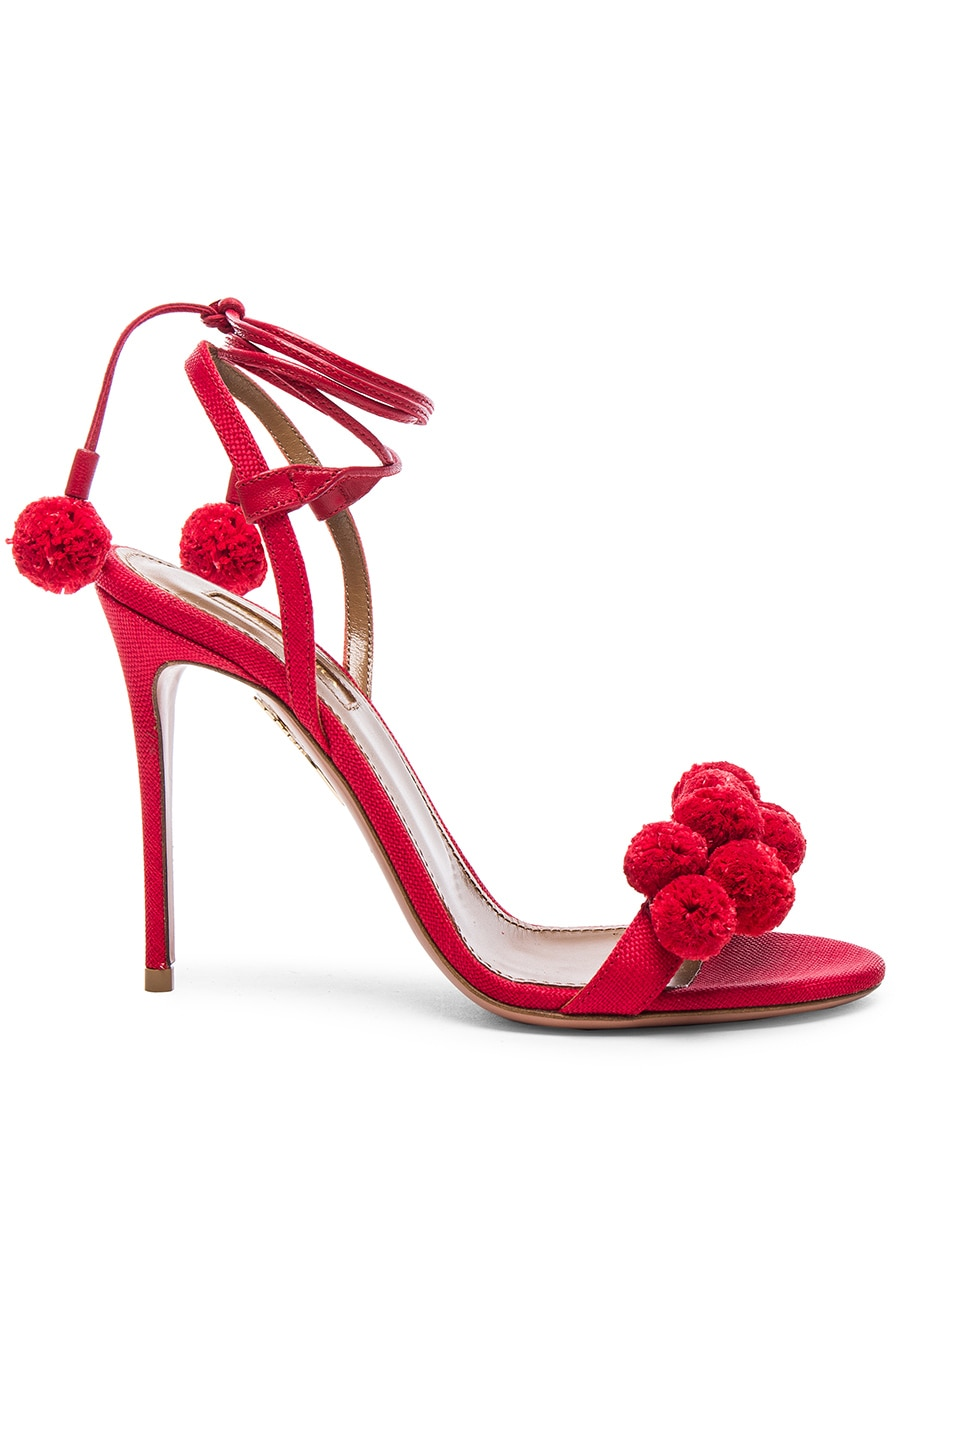 Image 1 of Aquazzura Pom Pom Heels in Lipstick